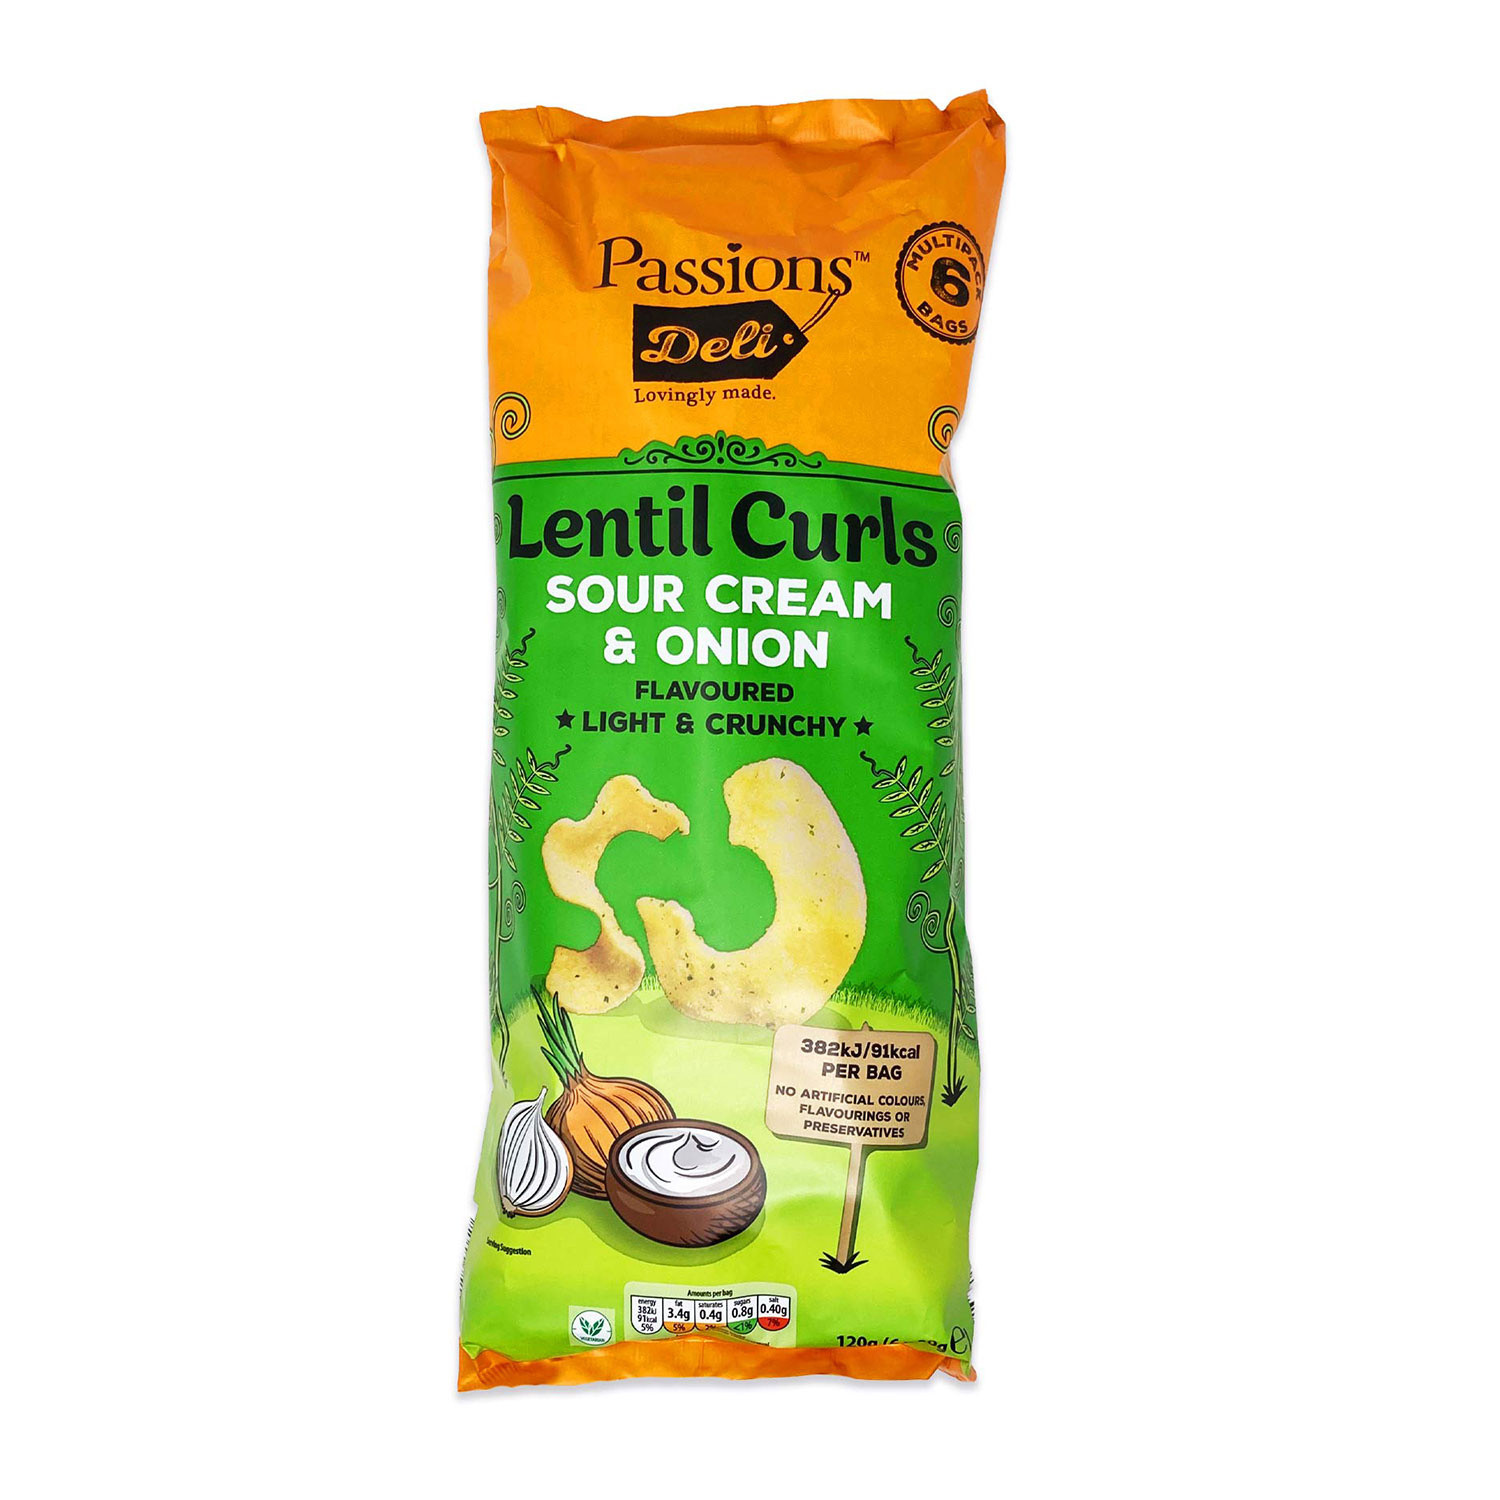 Lentil Curls Sour Cream & Onion